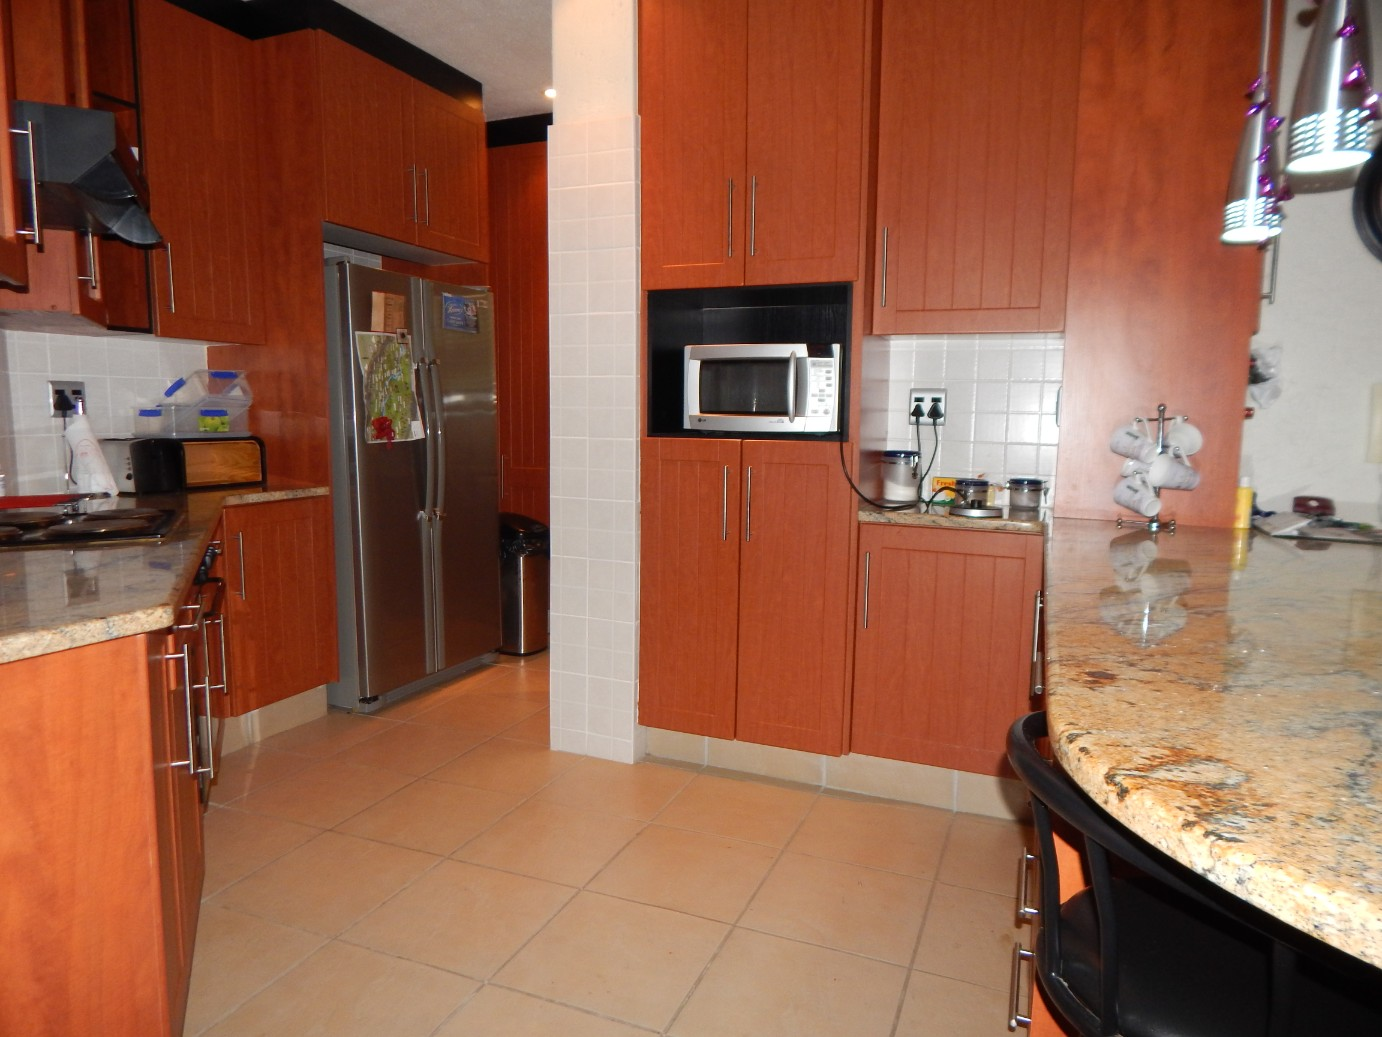 3 Bedroom Apartment for sale in Diaz Beach ENT0043723 : photo#10